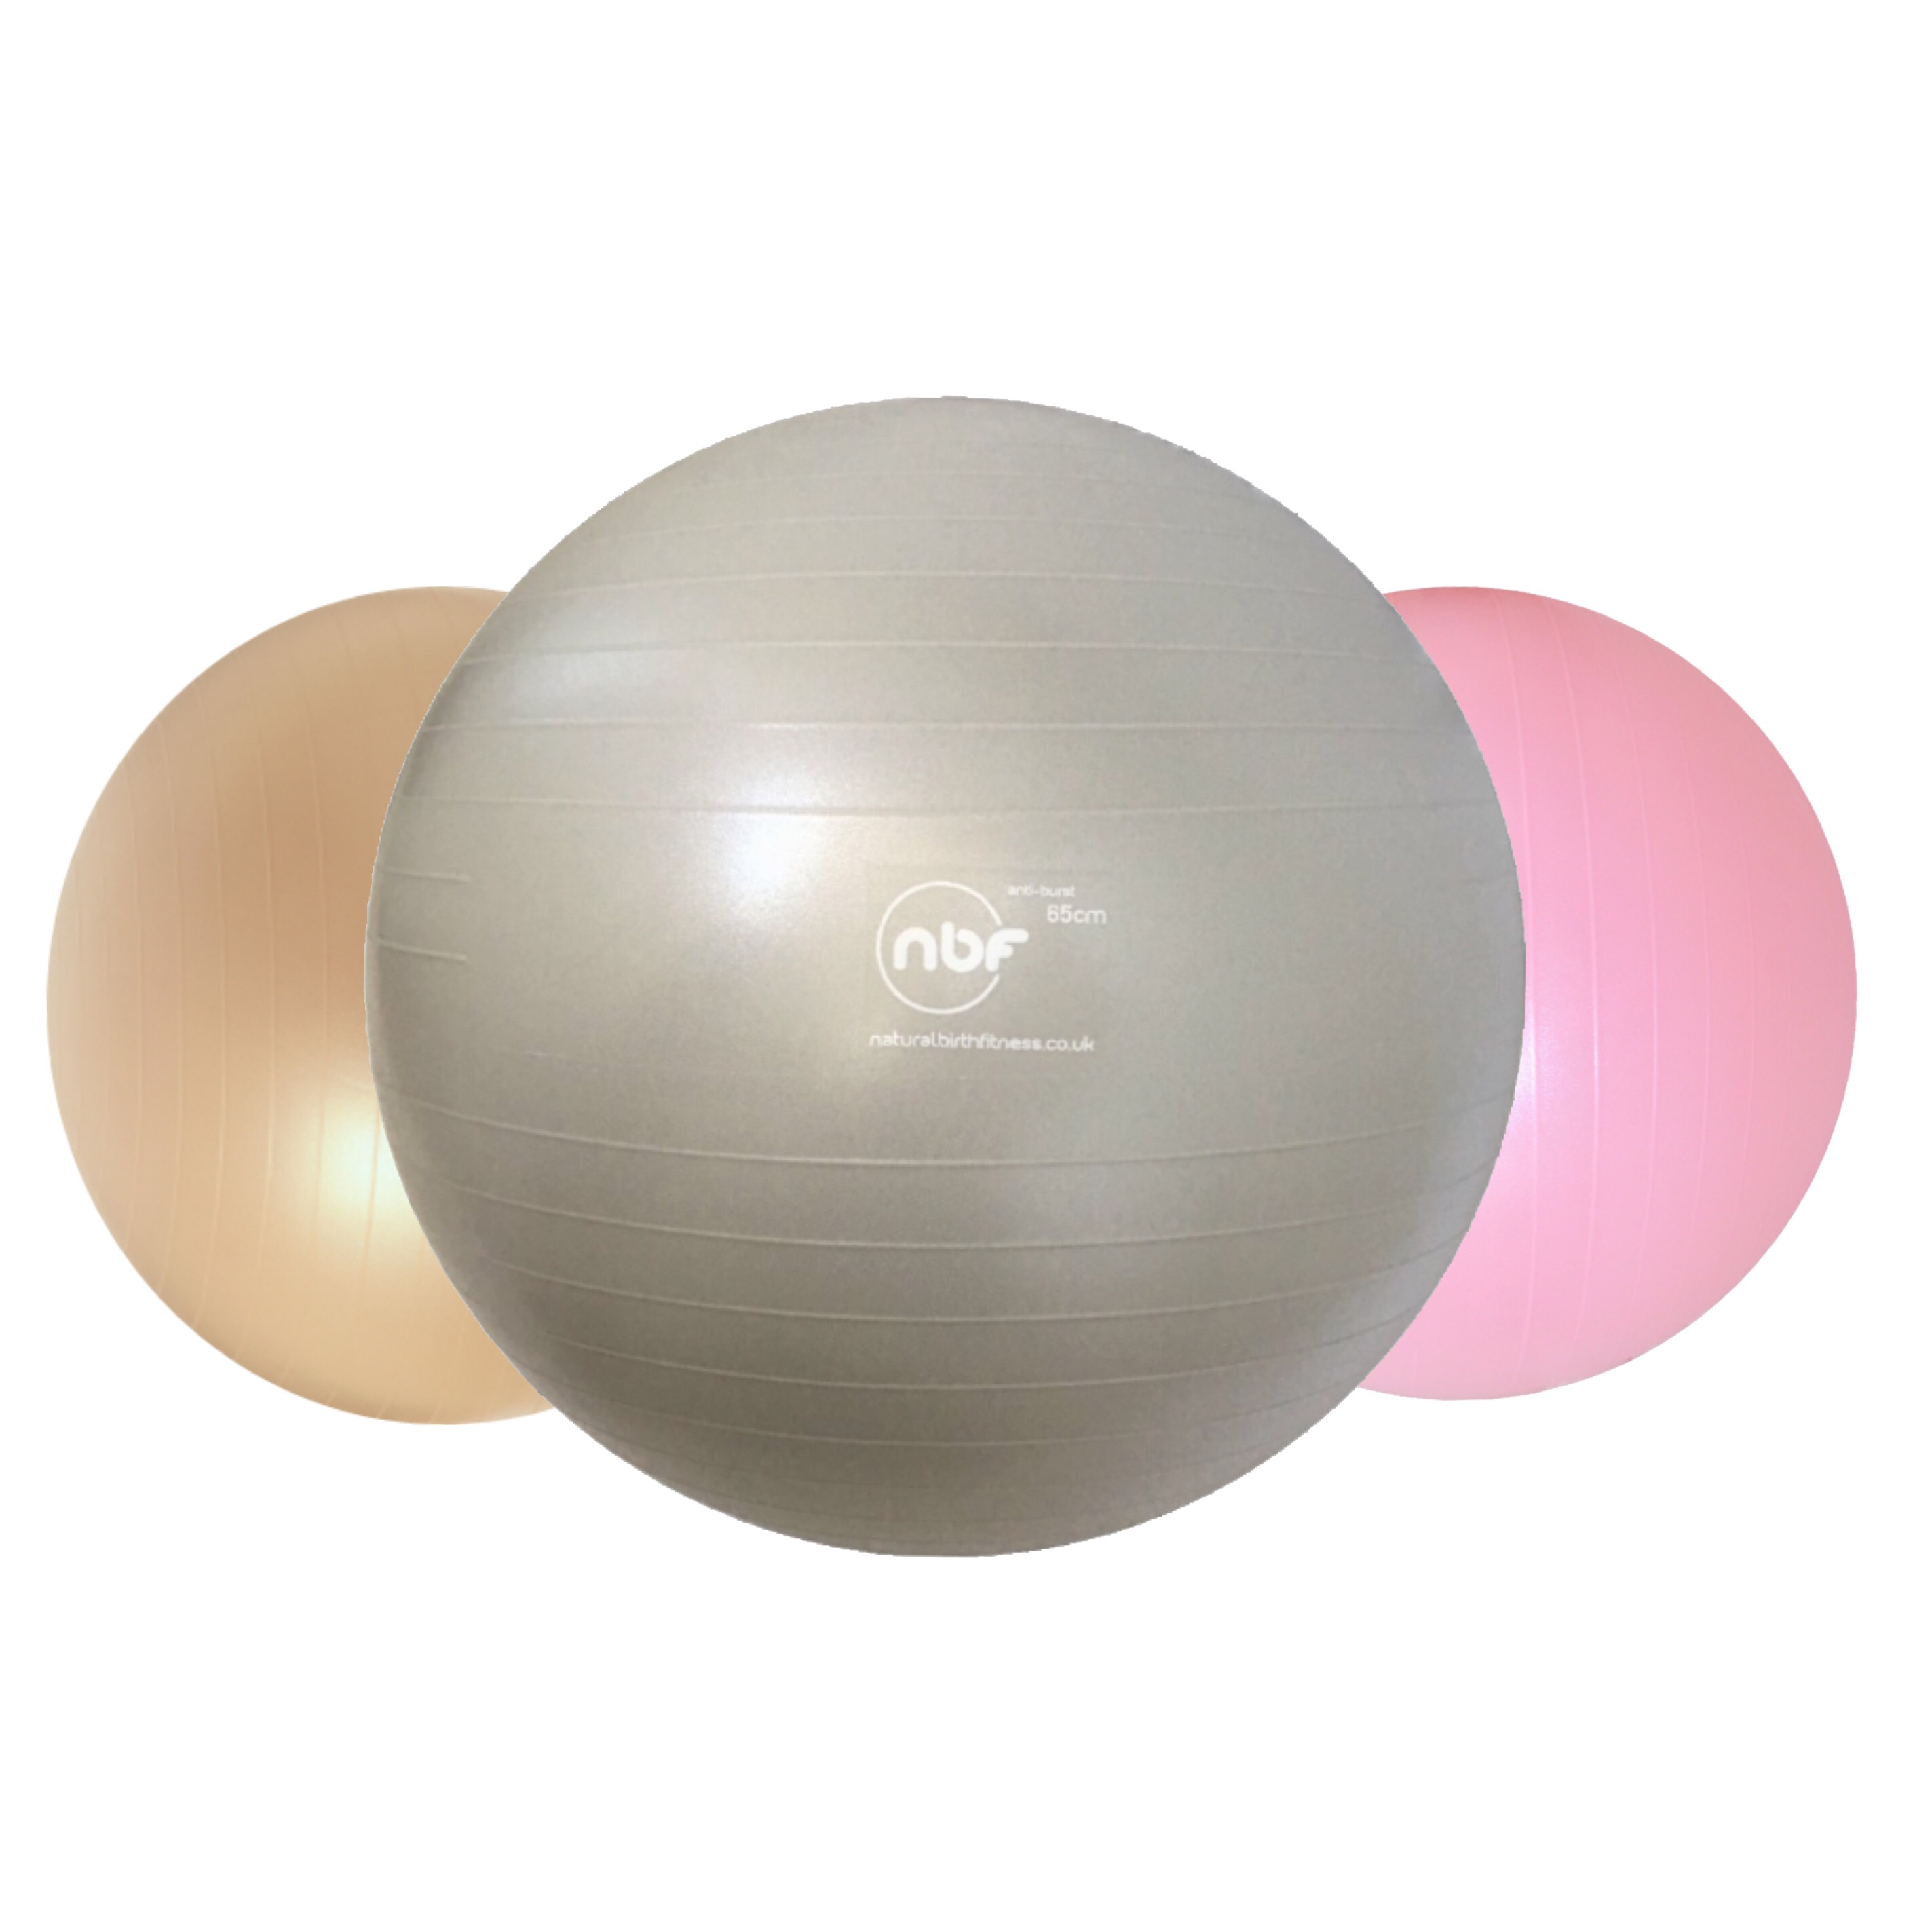 NBF Birth ball: silver, gold, pink